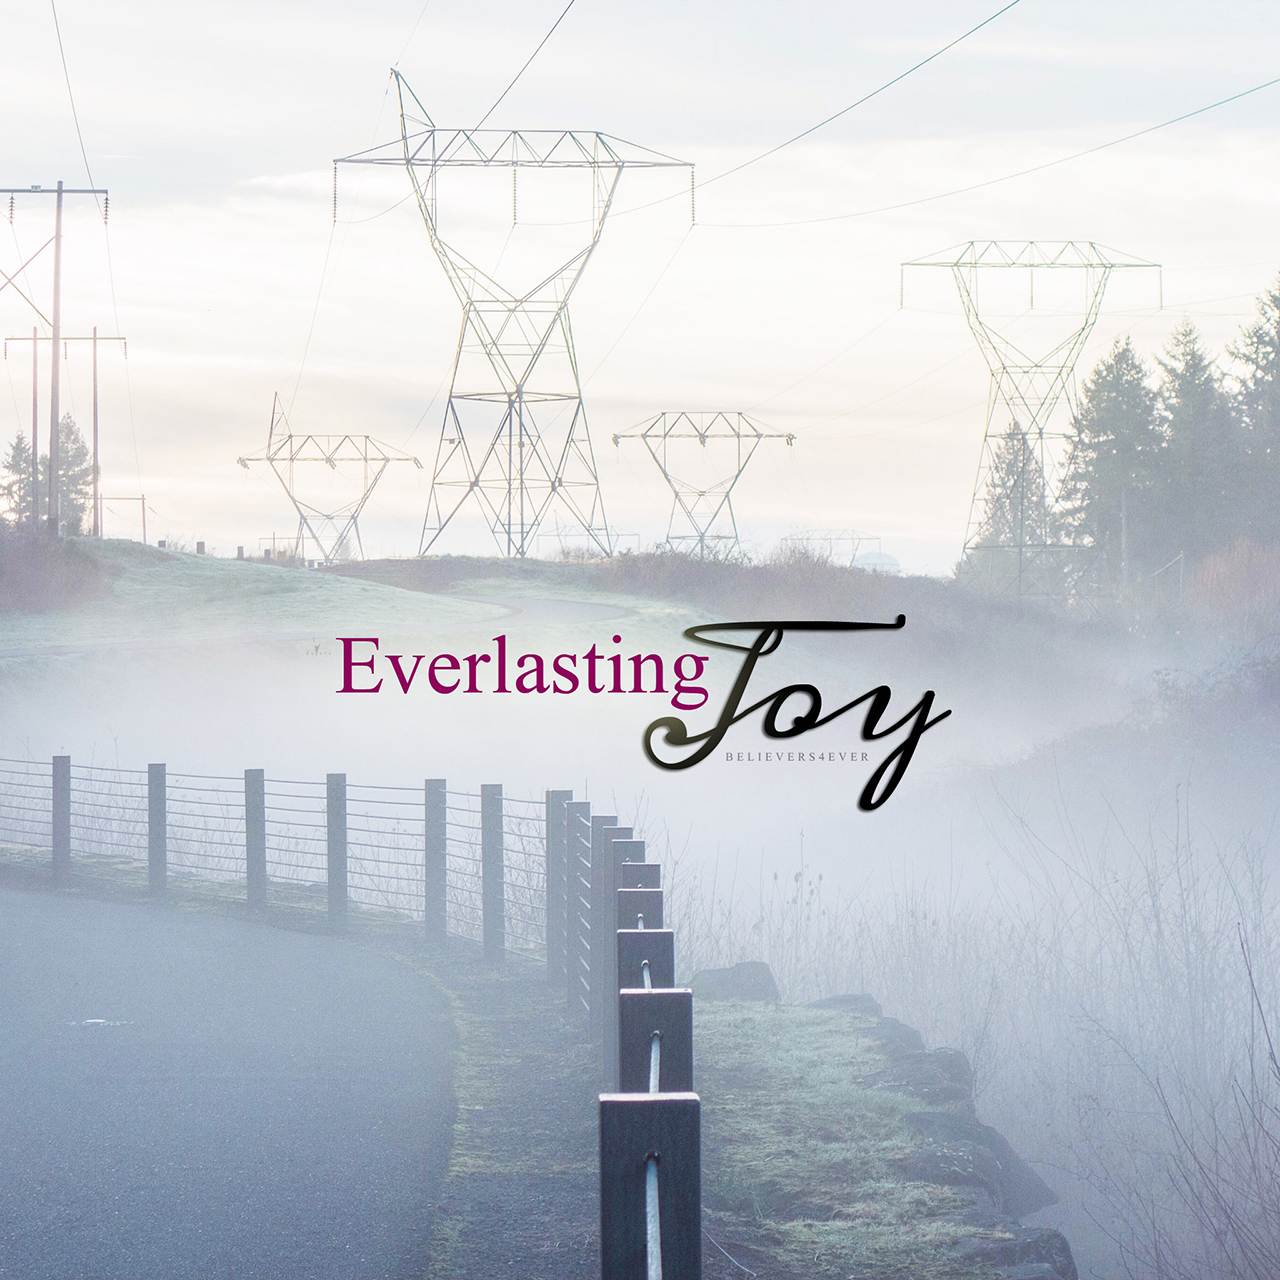 Everlasting joy tablet